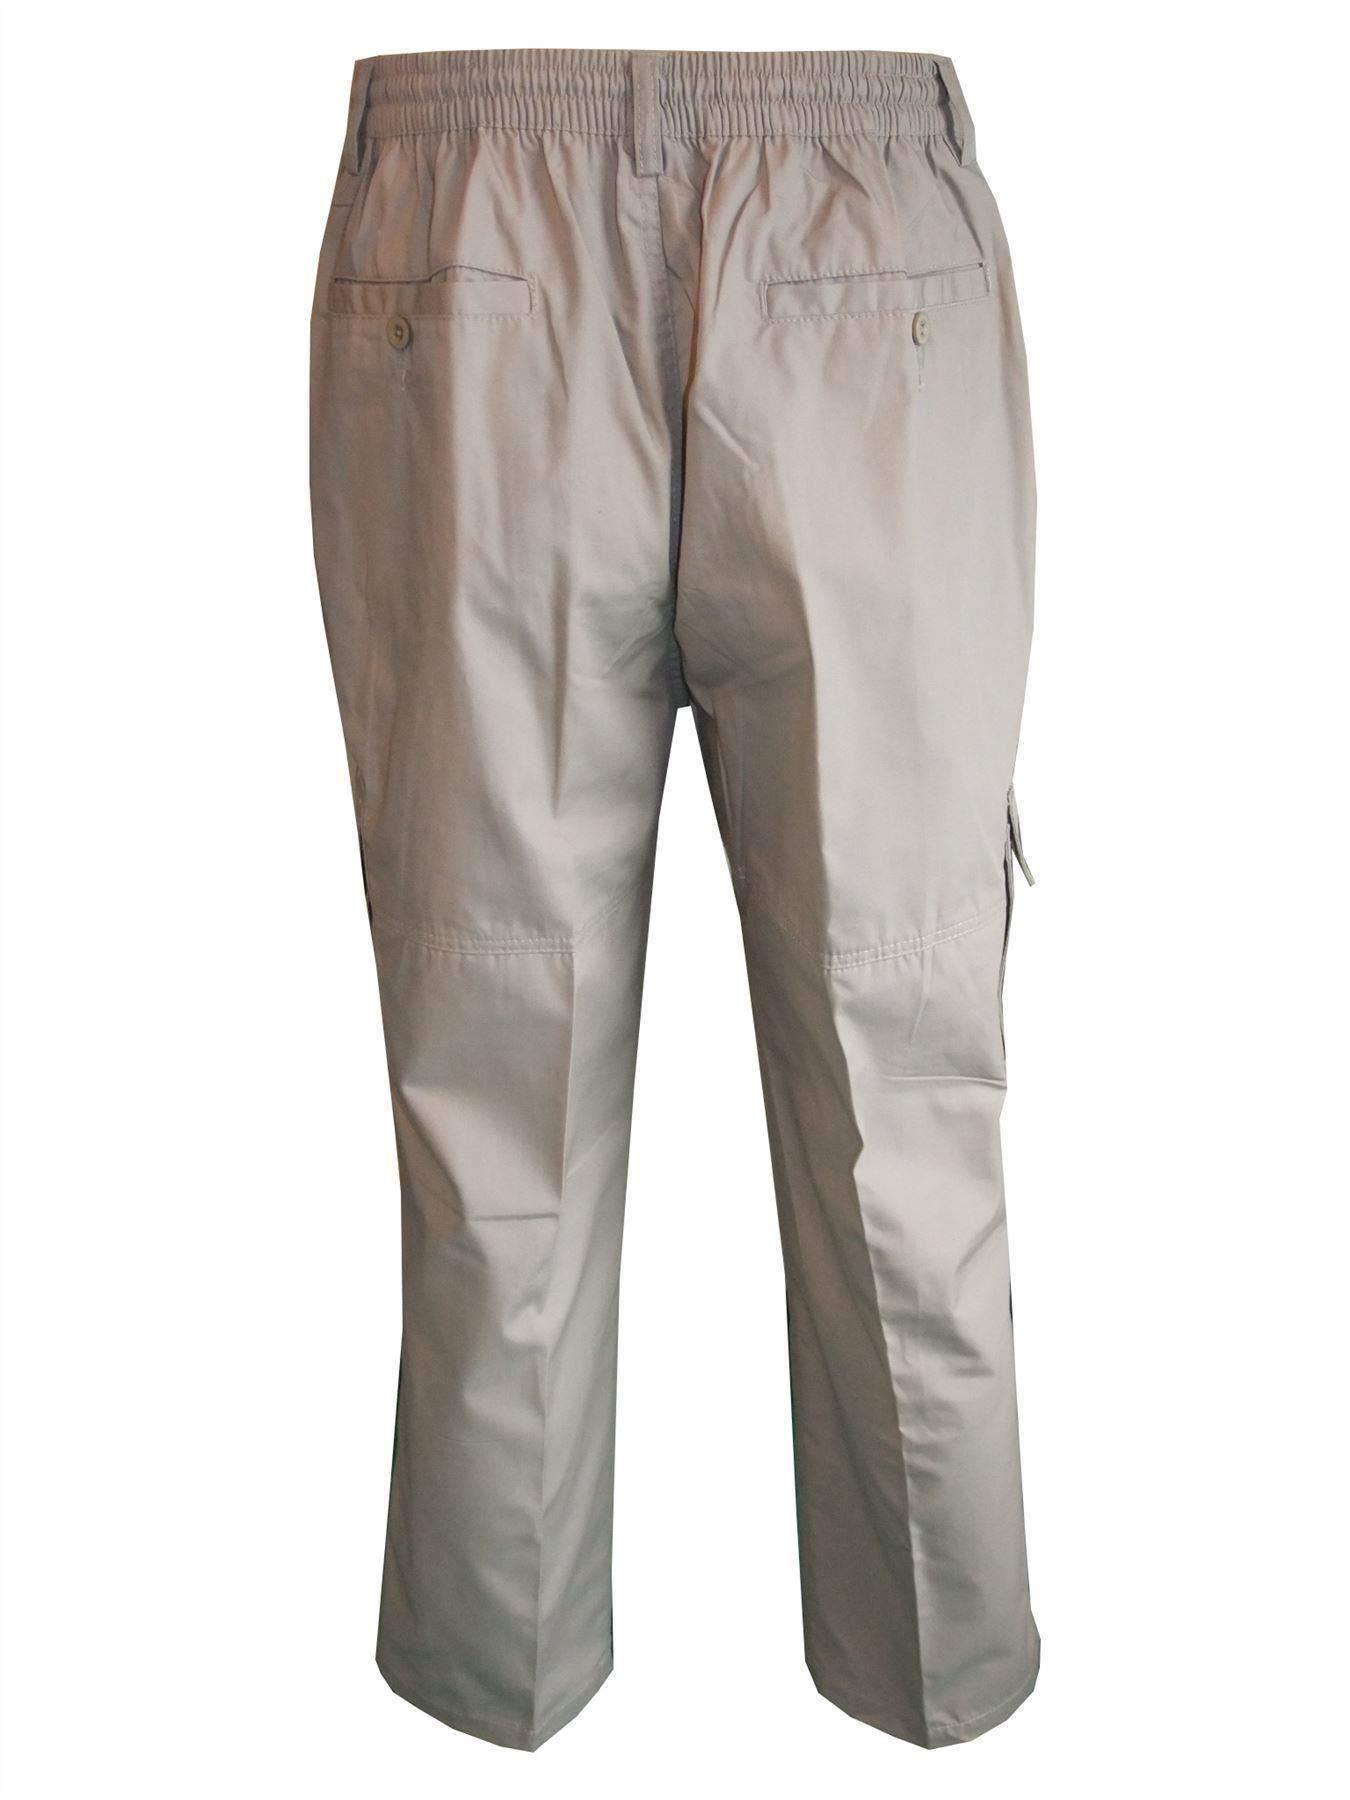 Men-Straight-Trousers-Cargo-Combat-Cotton-Elasticated-Zip-Fly-Casual-Pants-M-3XL thumbnail 3